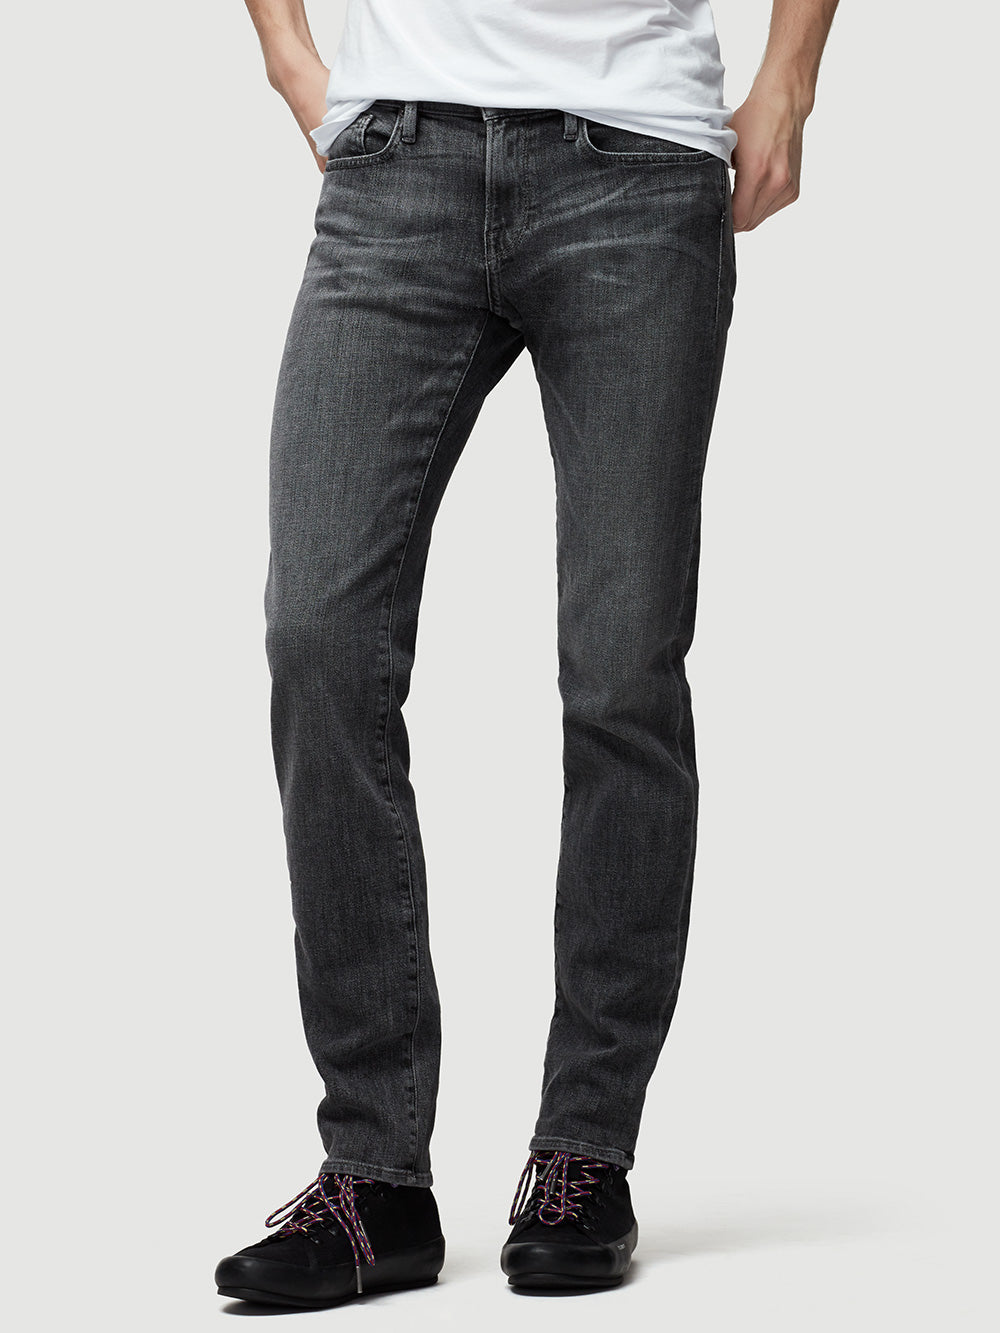 FRAME L'Homme Slim Fit Jeans (Oat) Low Shipping Fee Cheap Online o4iCNhFQw